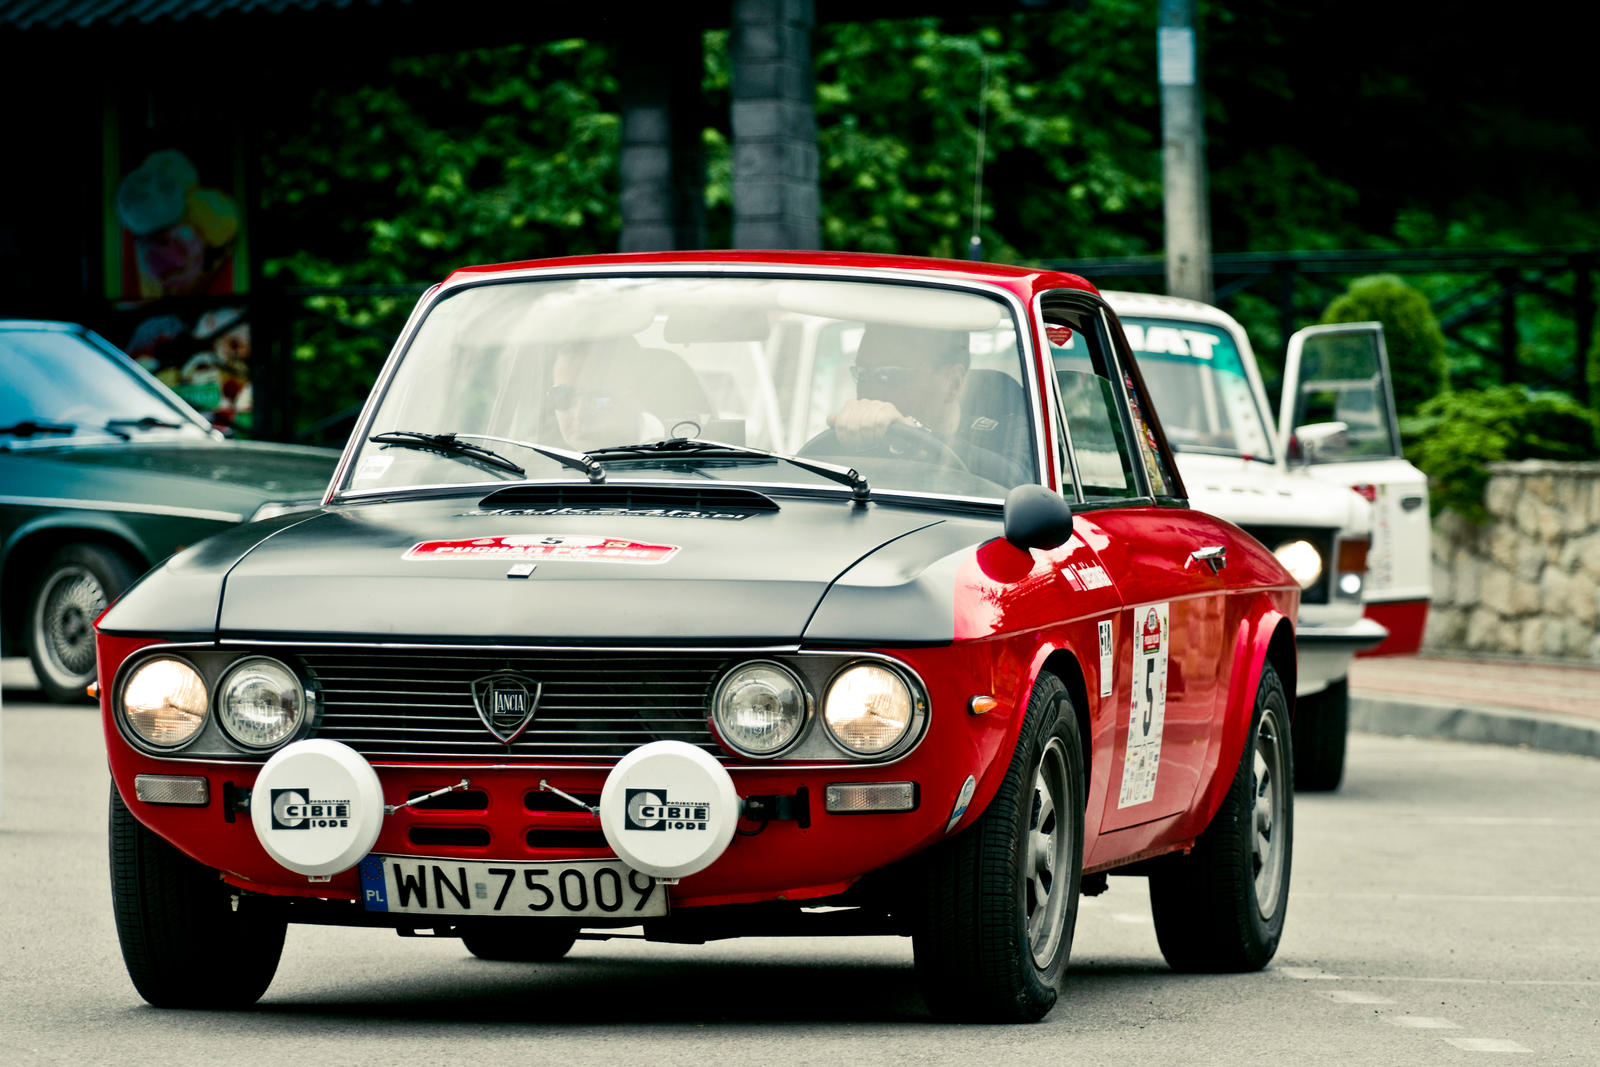 Lancia Fulvia Coupe 1.3S Monte Carlo by pawelsky